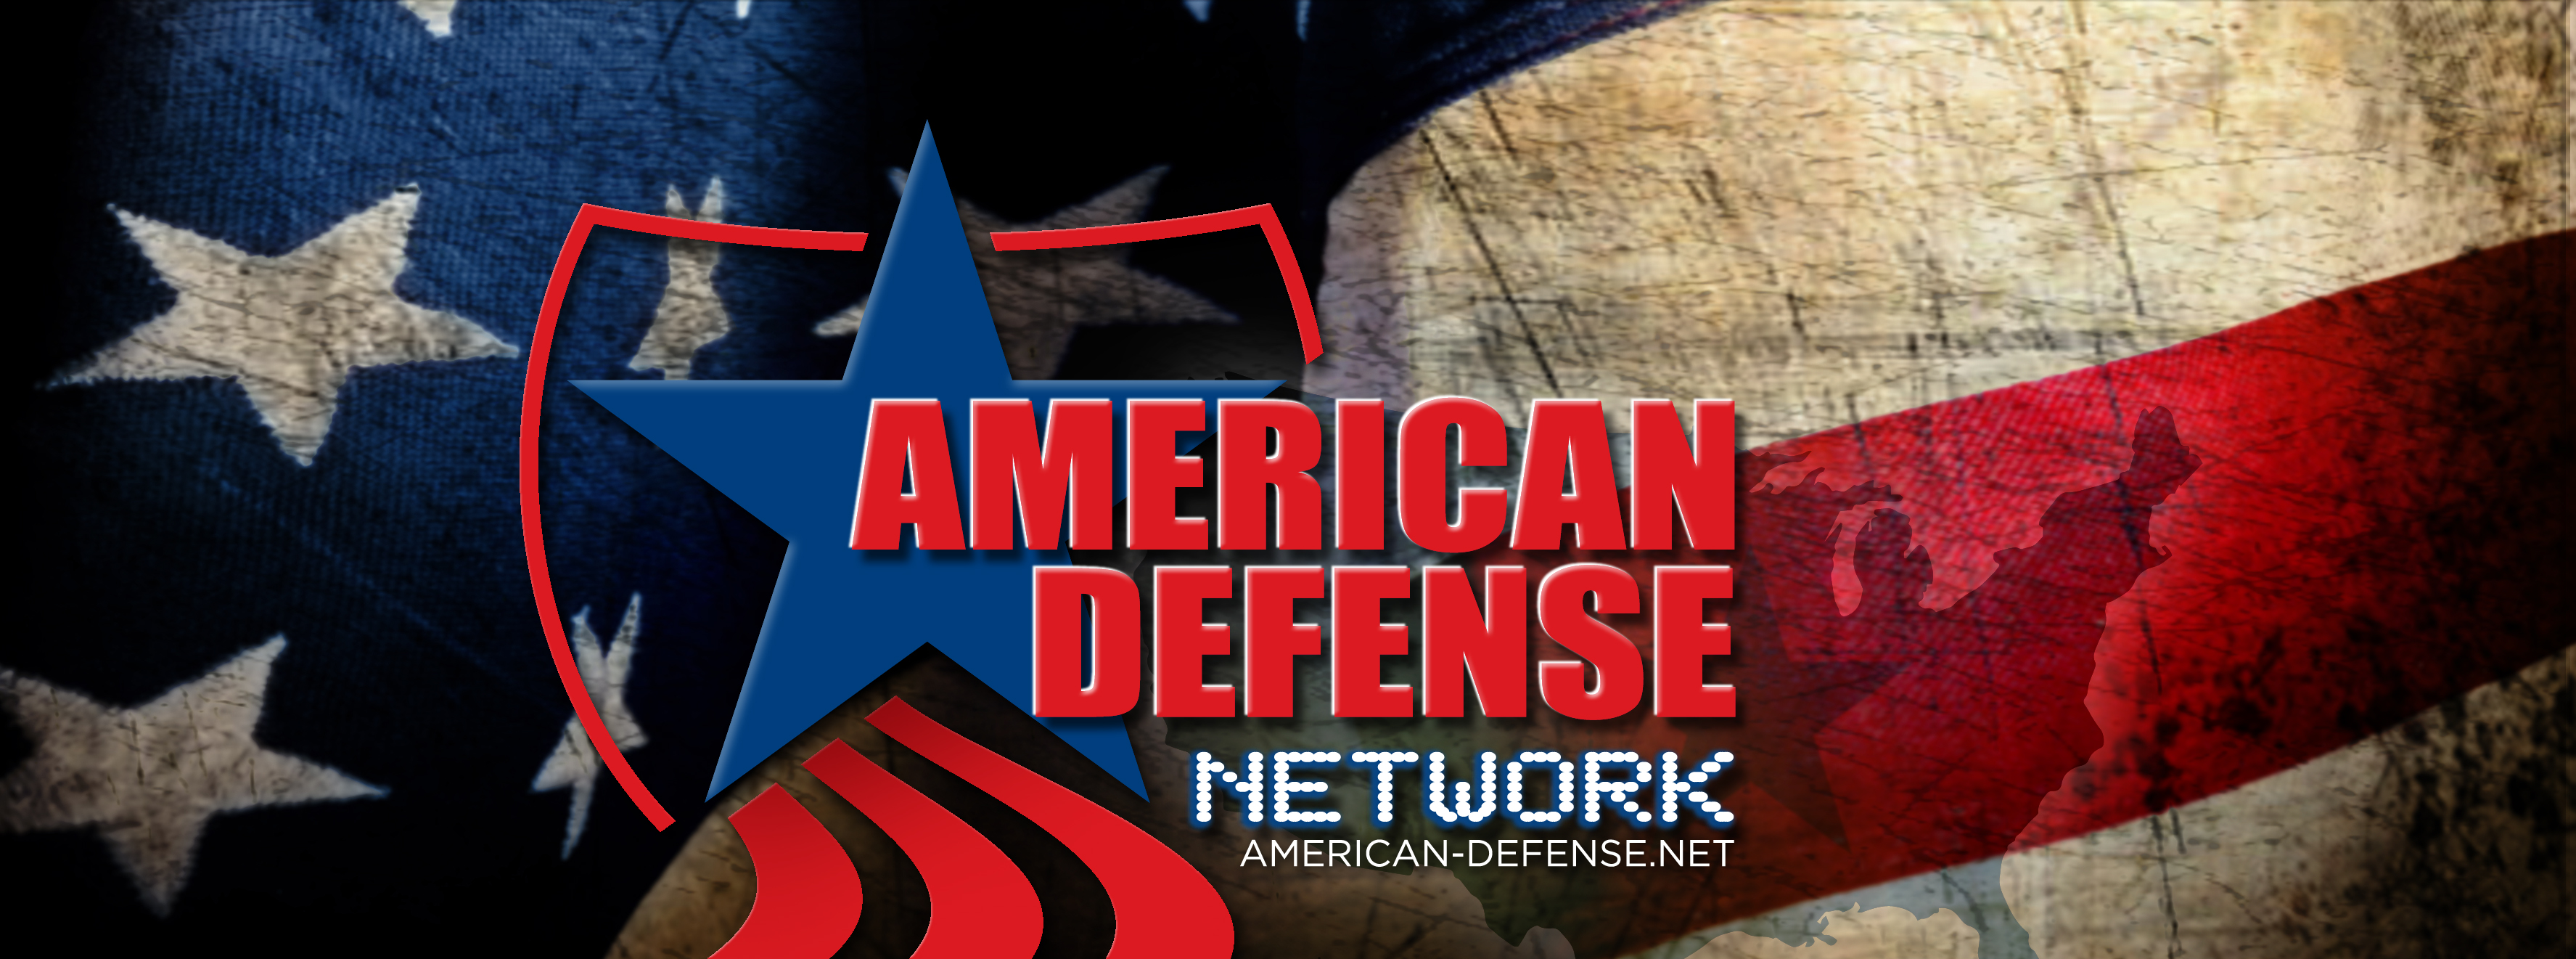 American Defense Network plans launch in July of 2017